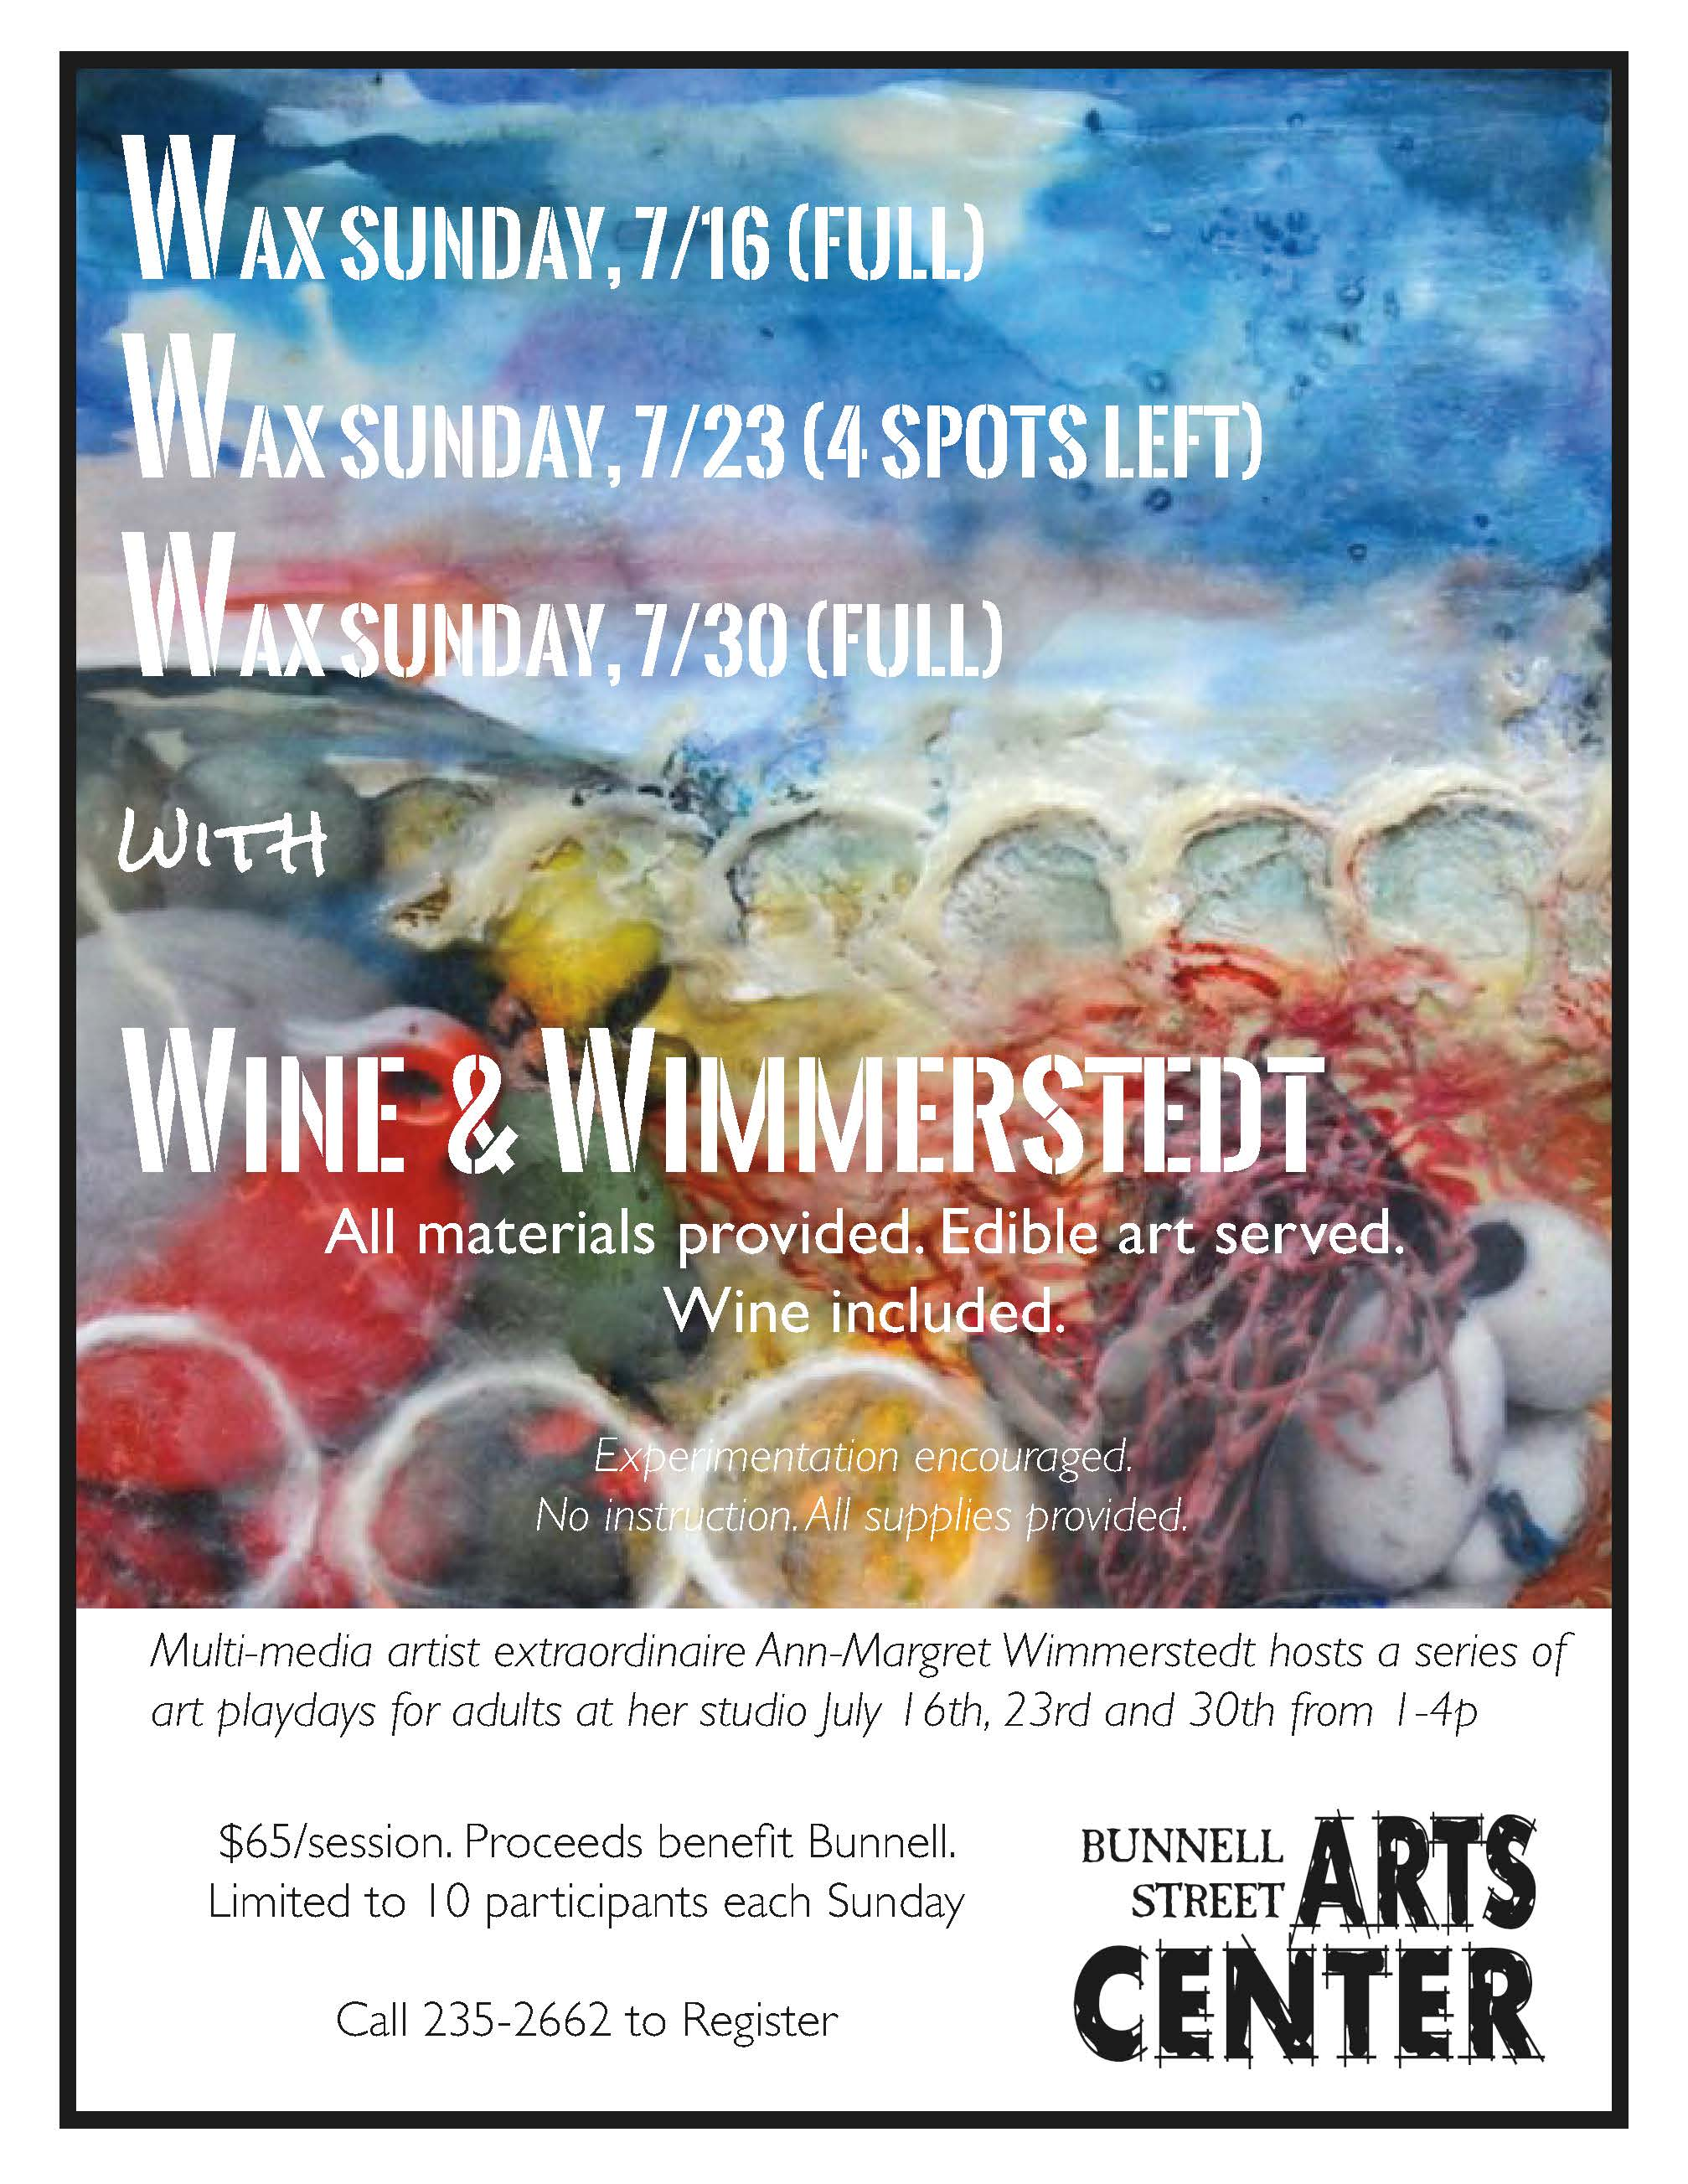 Wax And Wine With Wimmerstedt, Multi-media Art Play Days